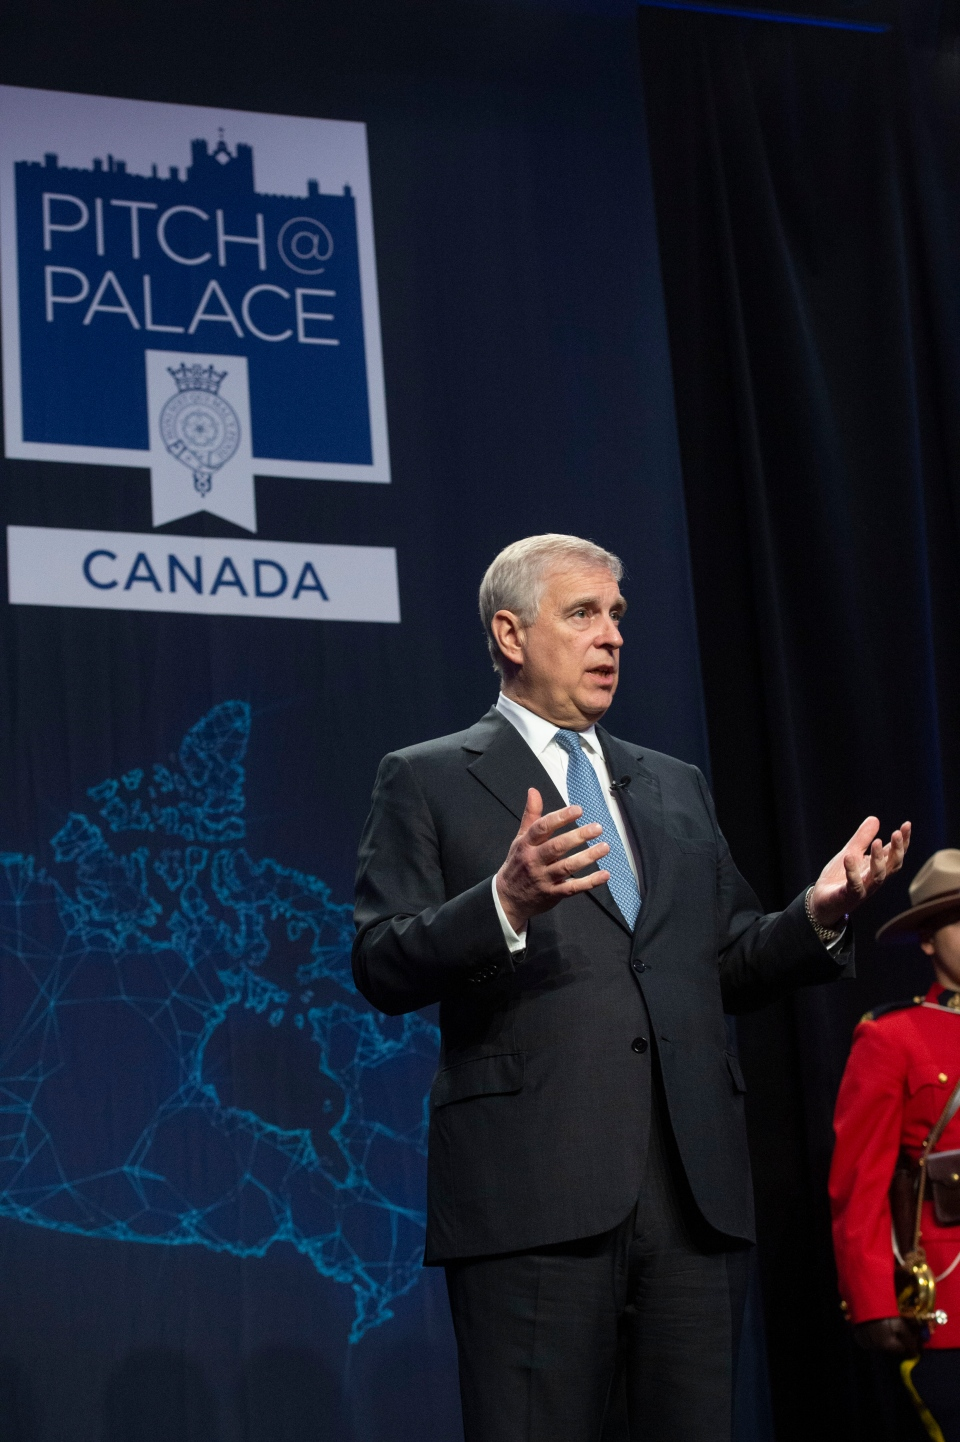 Prince Andrew was in Toronto for the first Canadian Pitch@Palace event, which saw 24 entrepreneurs from across the country pitch their business ideas to a panel of judges including the Duke of York. (Pitch@Palace)